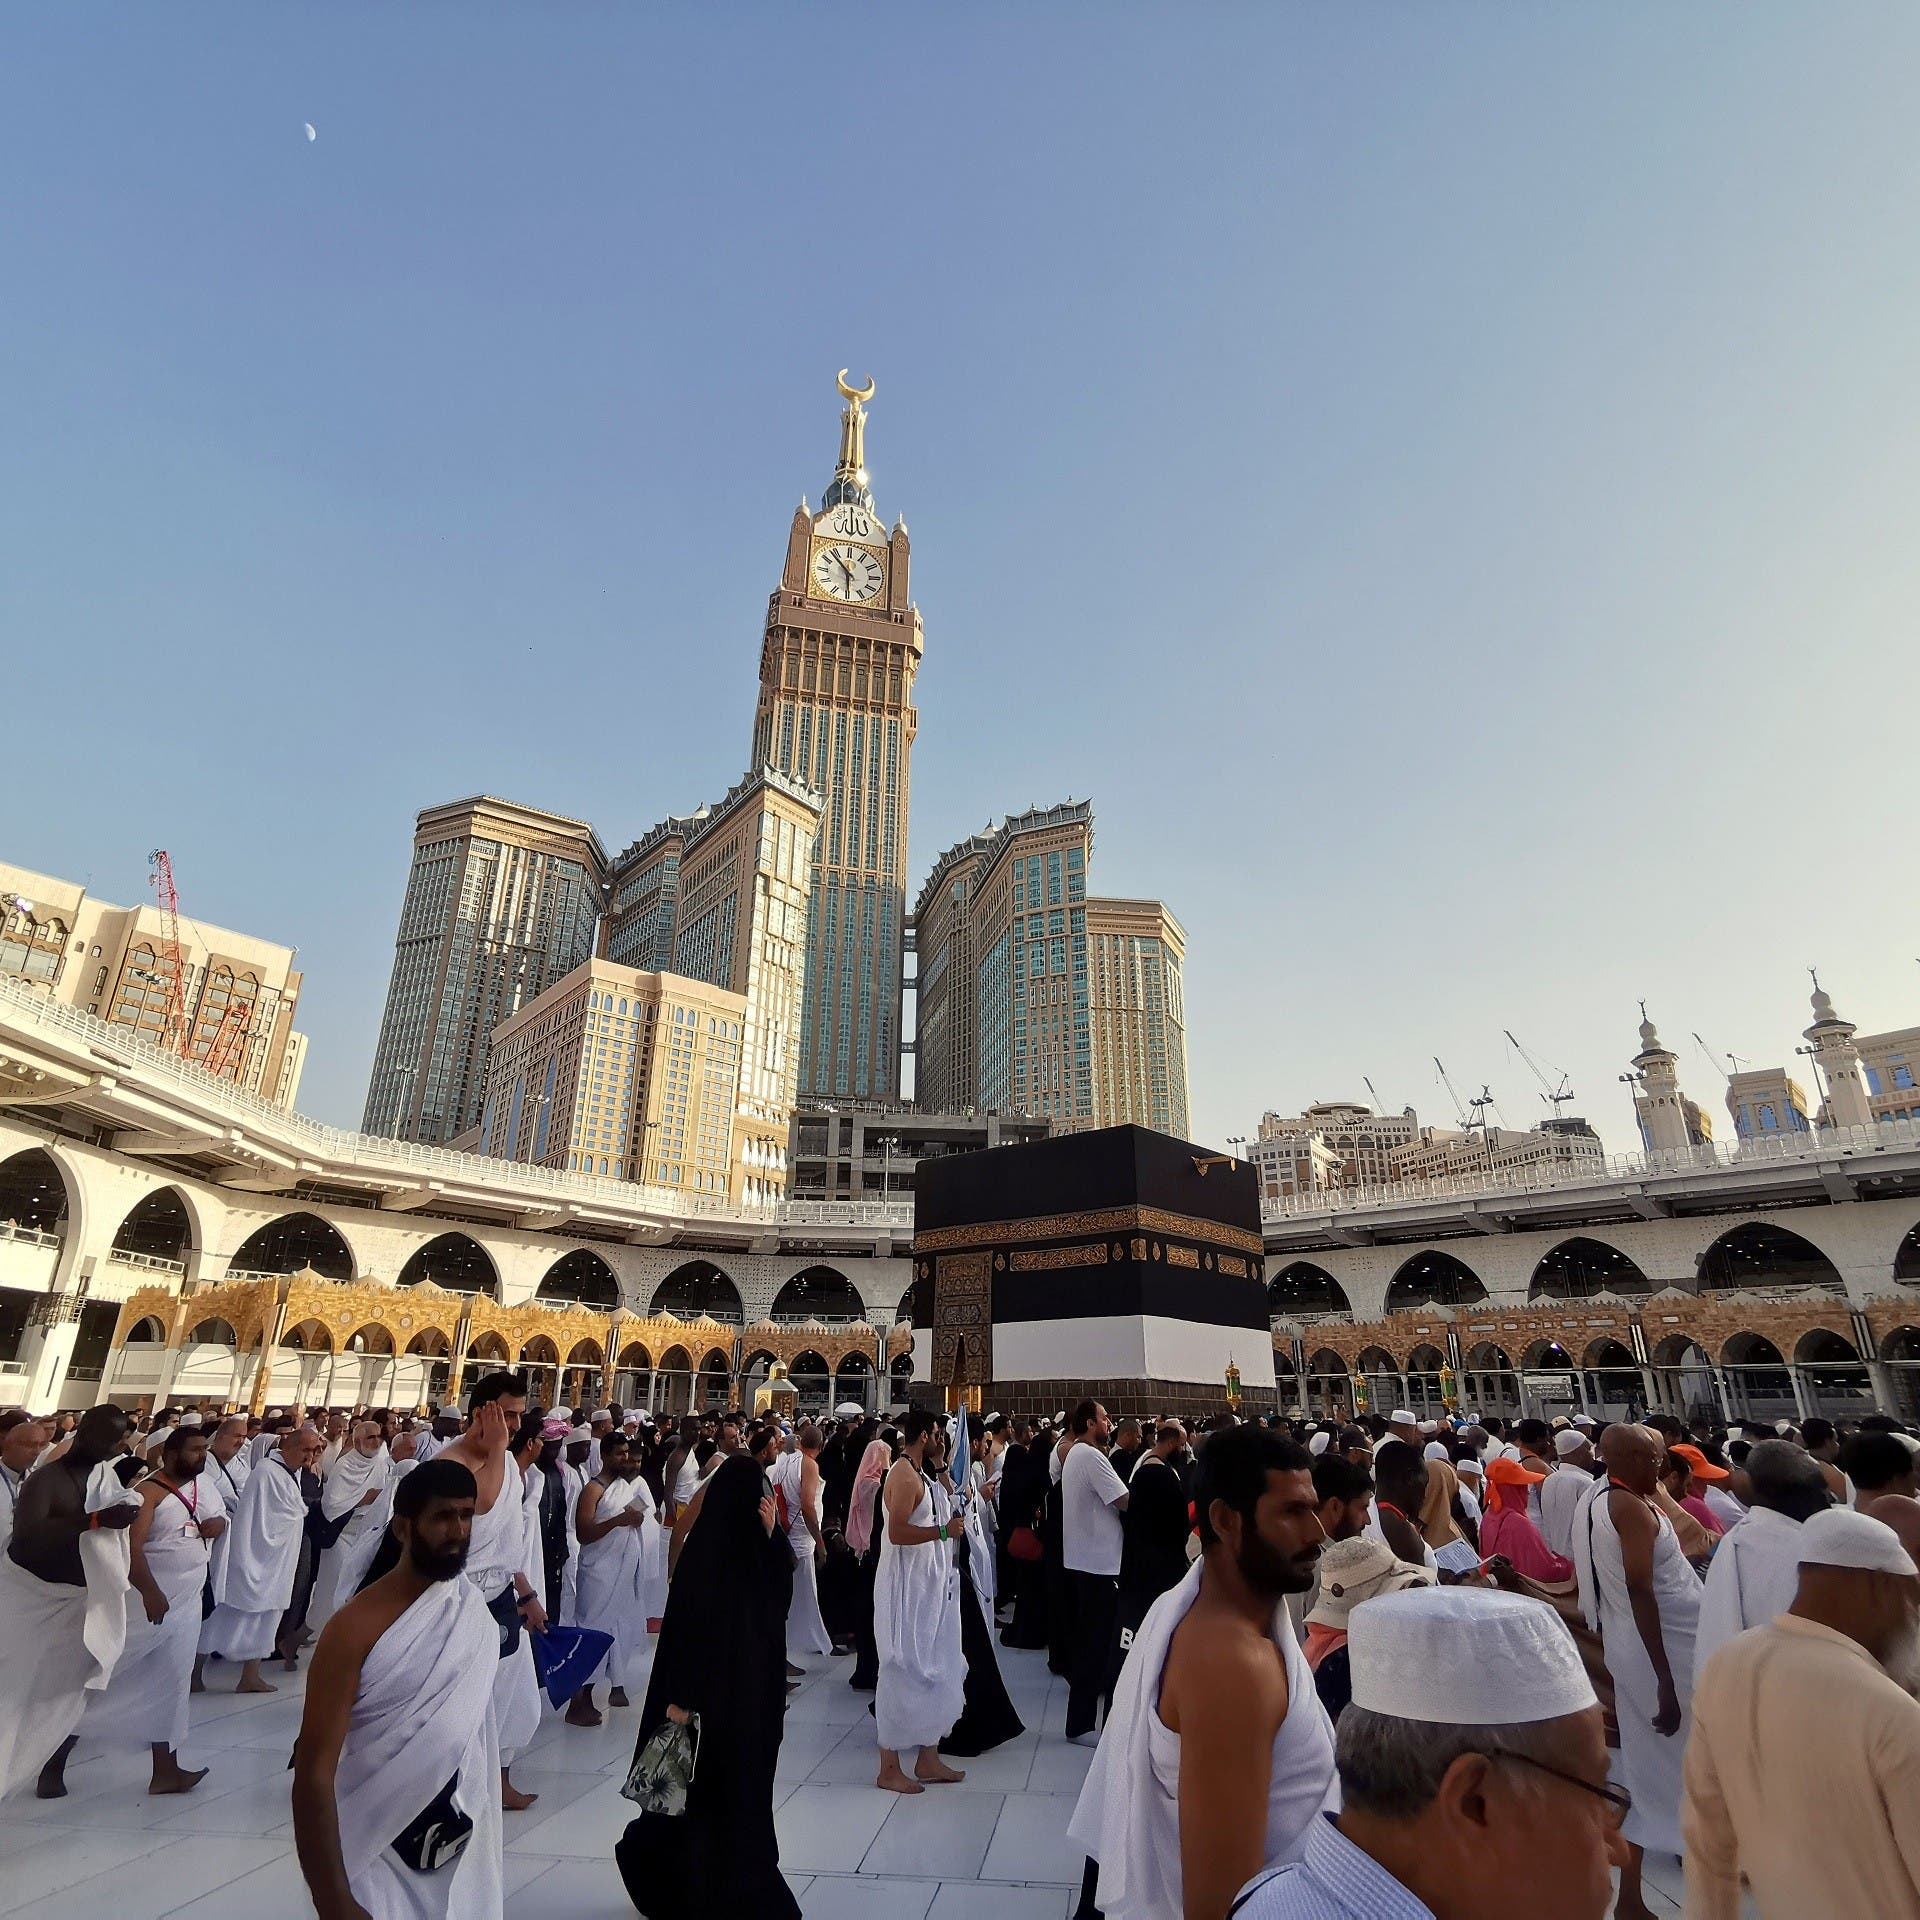 Saudi Arabia selects 60,000 people to perform Hajj amid ongoing COVID-19 rules